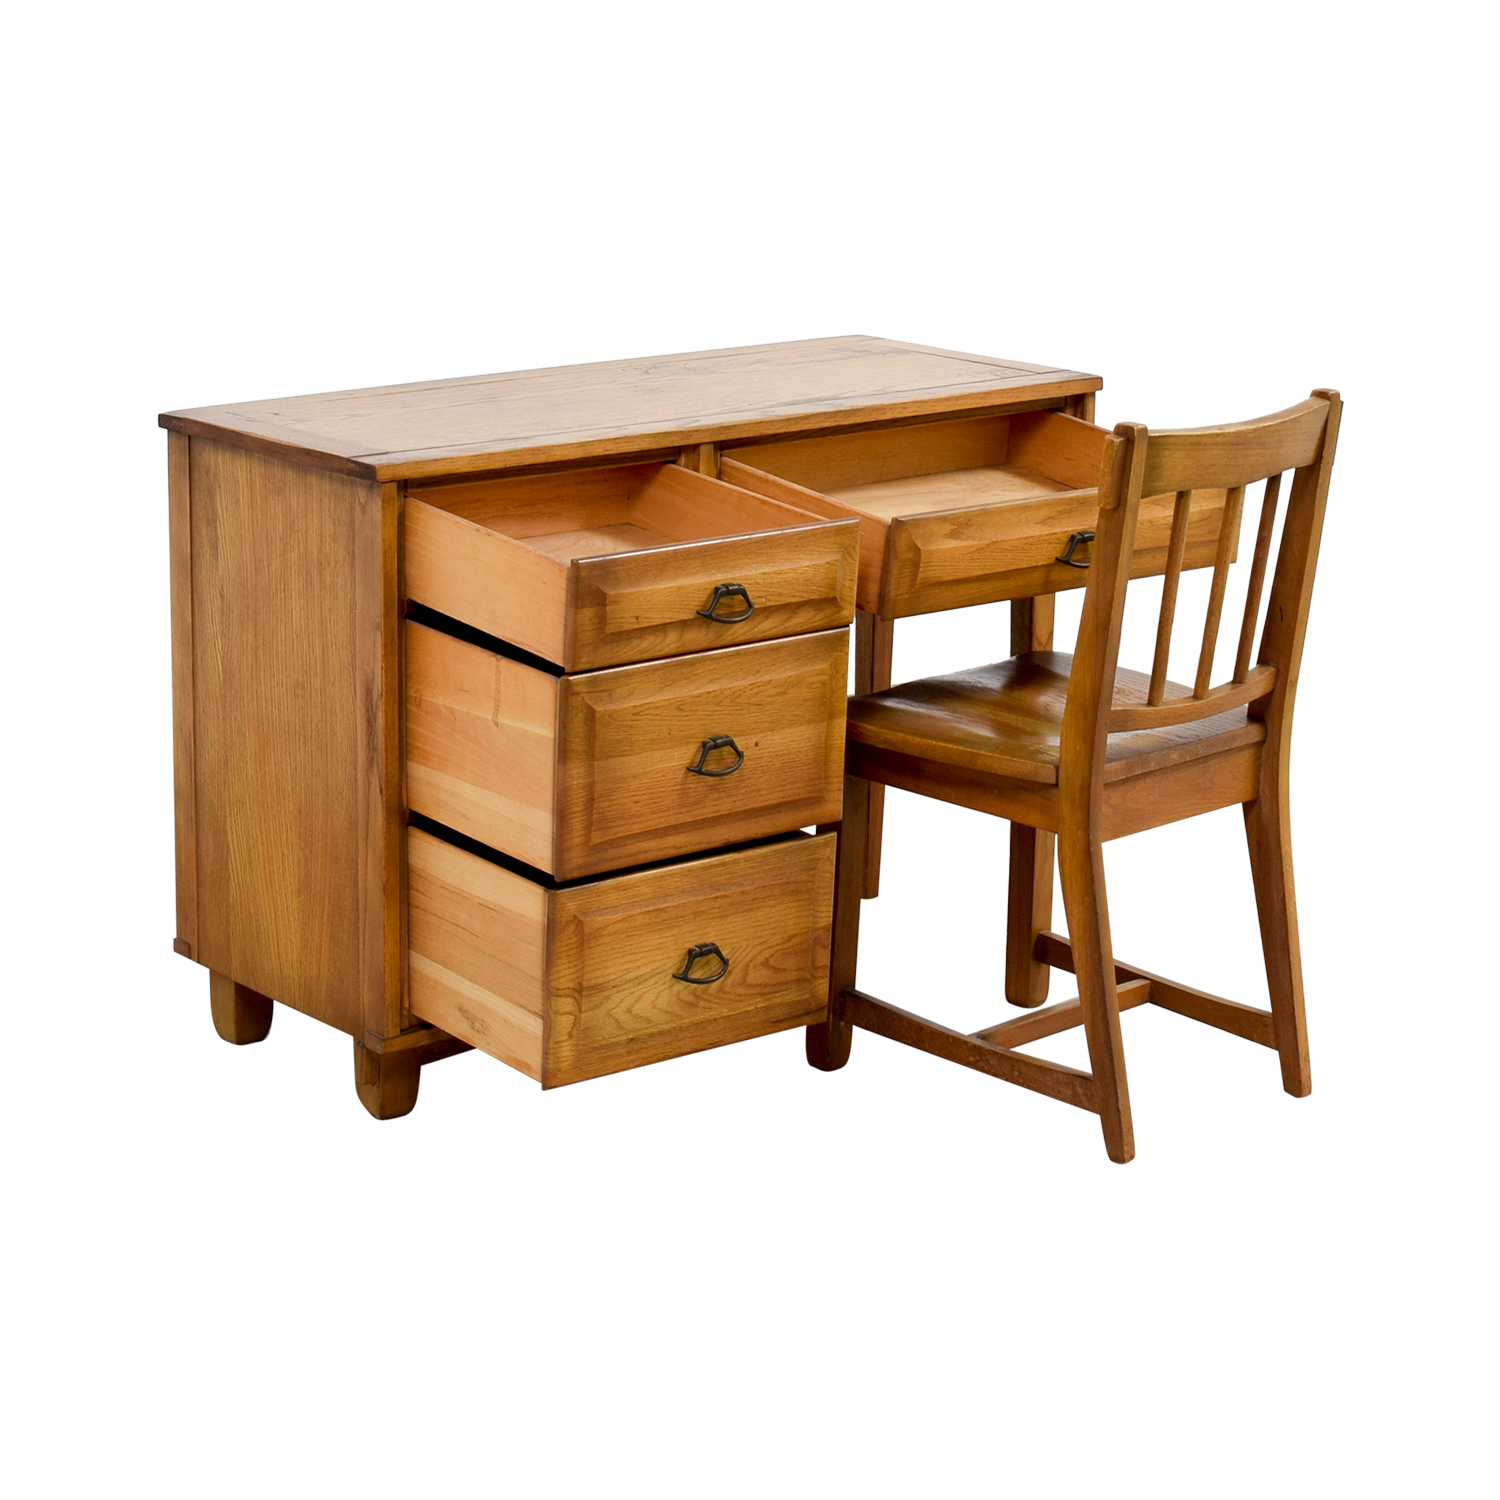 Vintage Mid Century Oak Desk with Chair Home Office Desks